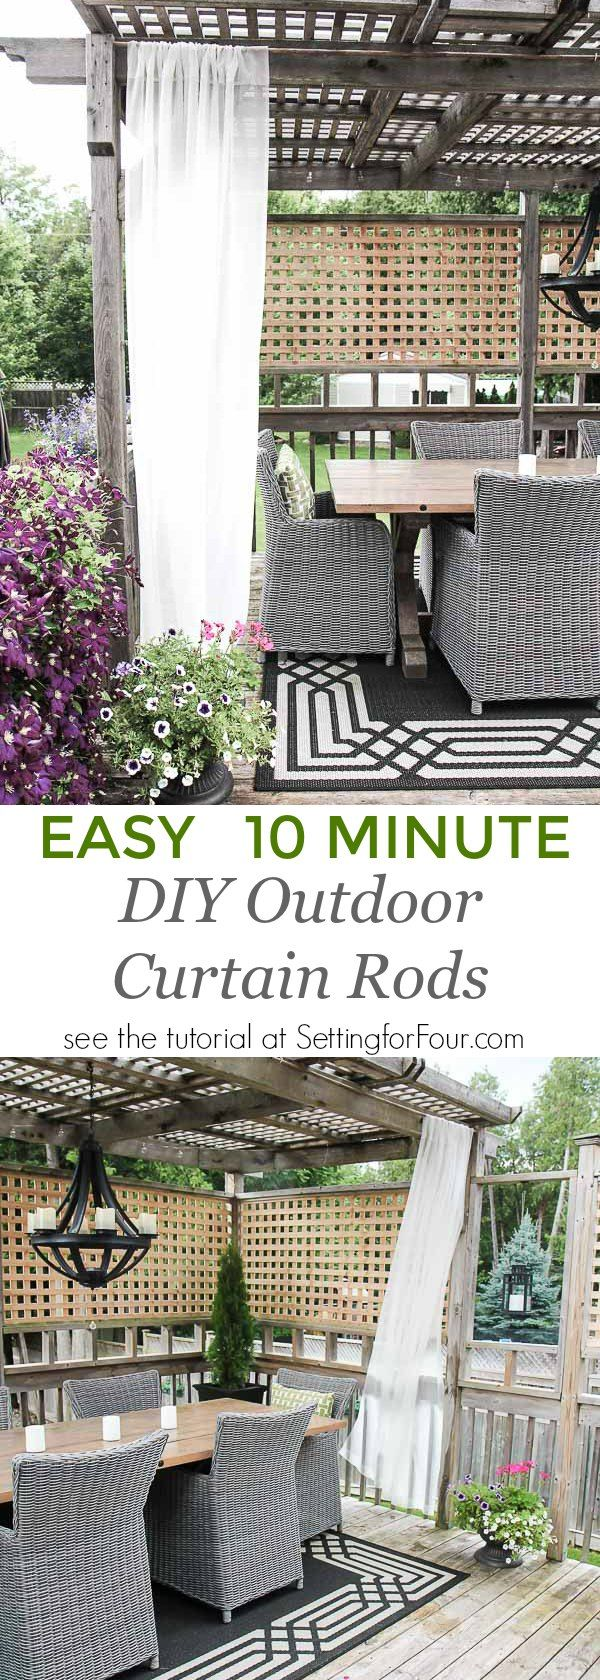 Diy outdoor curtain rods - Easy Diy Outdoor Curtain Rods In 10 Minutes